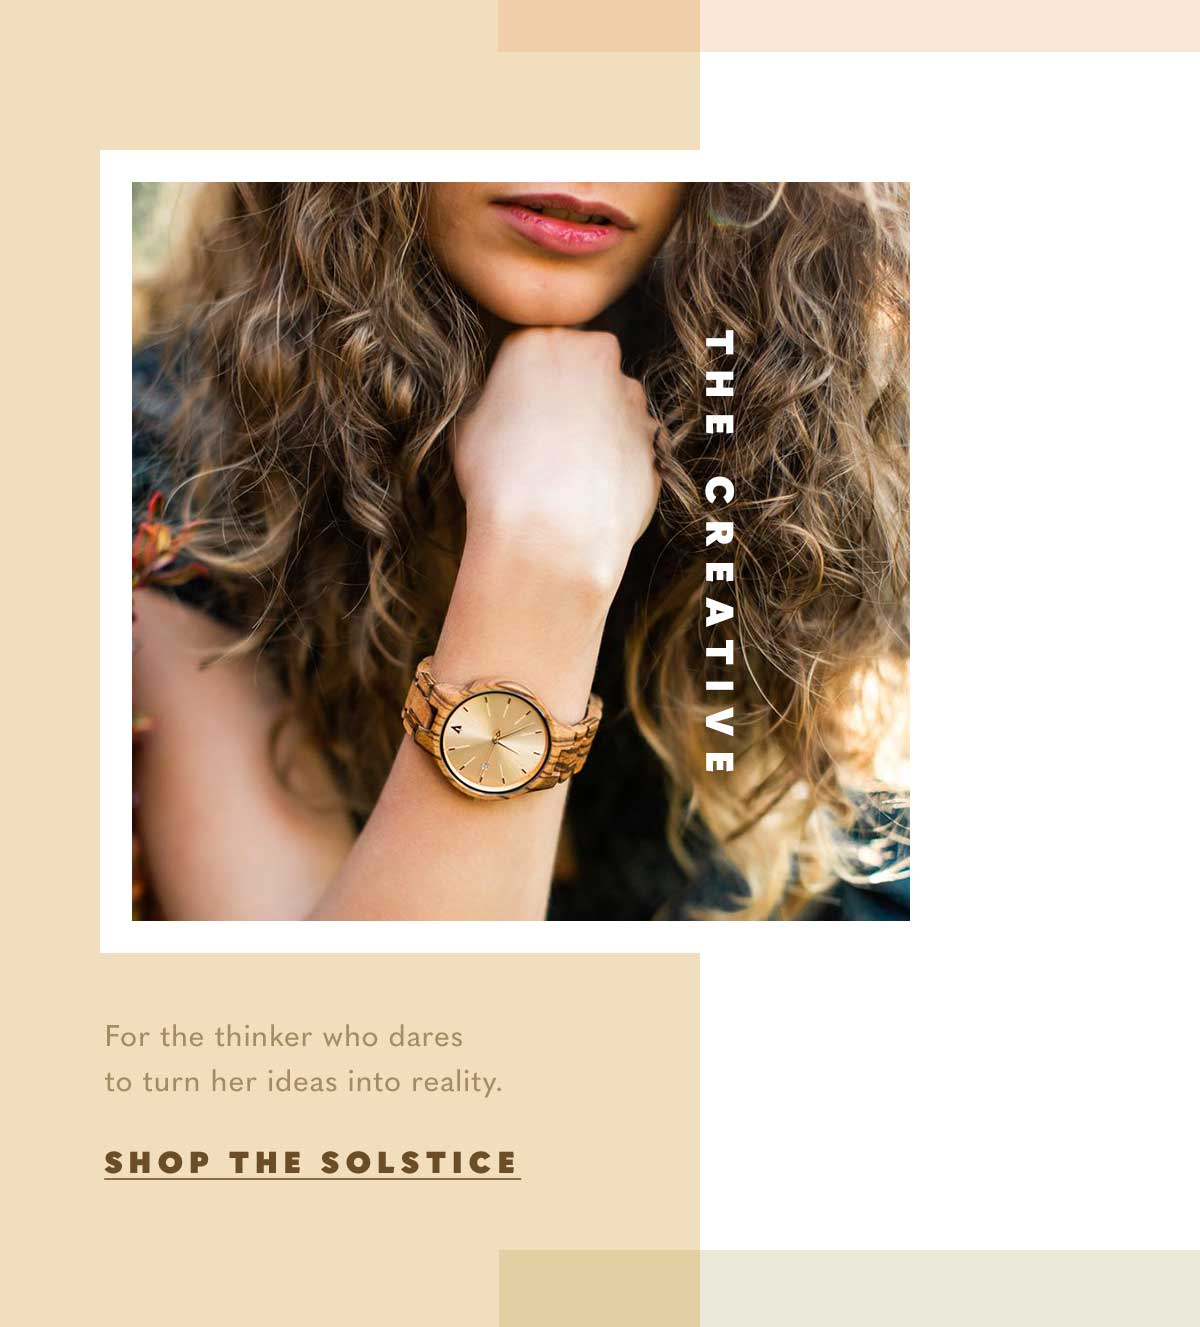 THE CREATIVE. For the thinker who dares to turn her ideas into reality. SHOP THE SOLSTICE